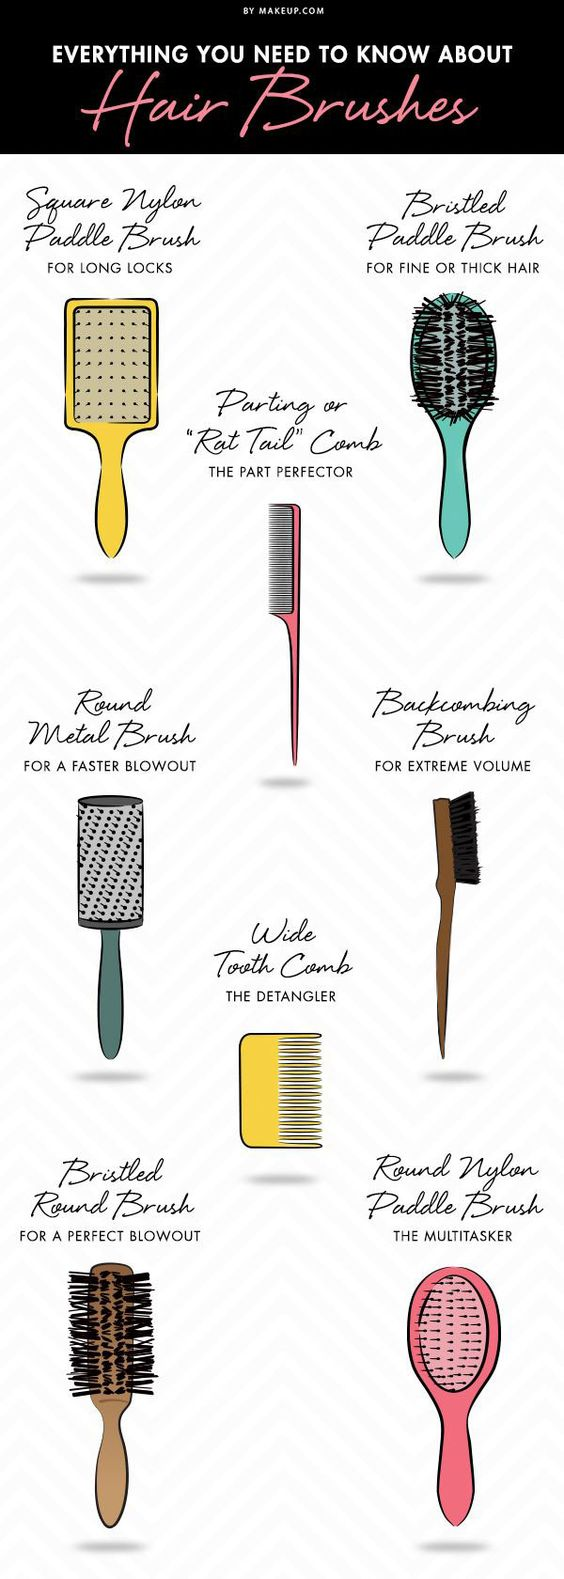 How To Use Hair Brushes The Right Way